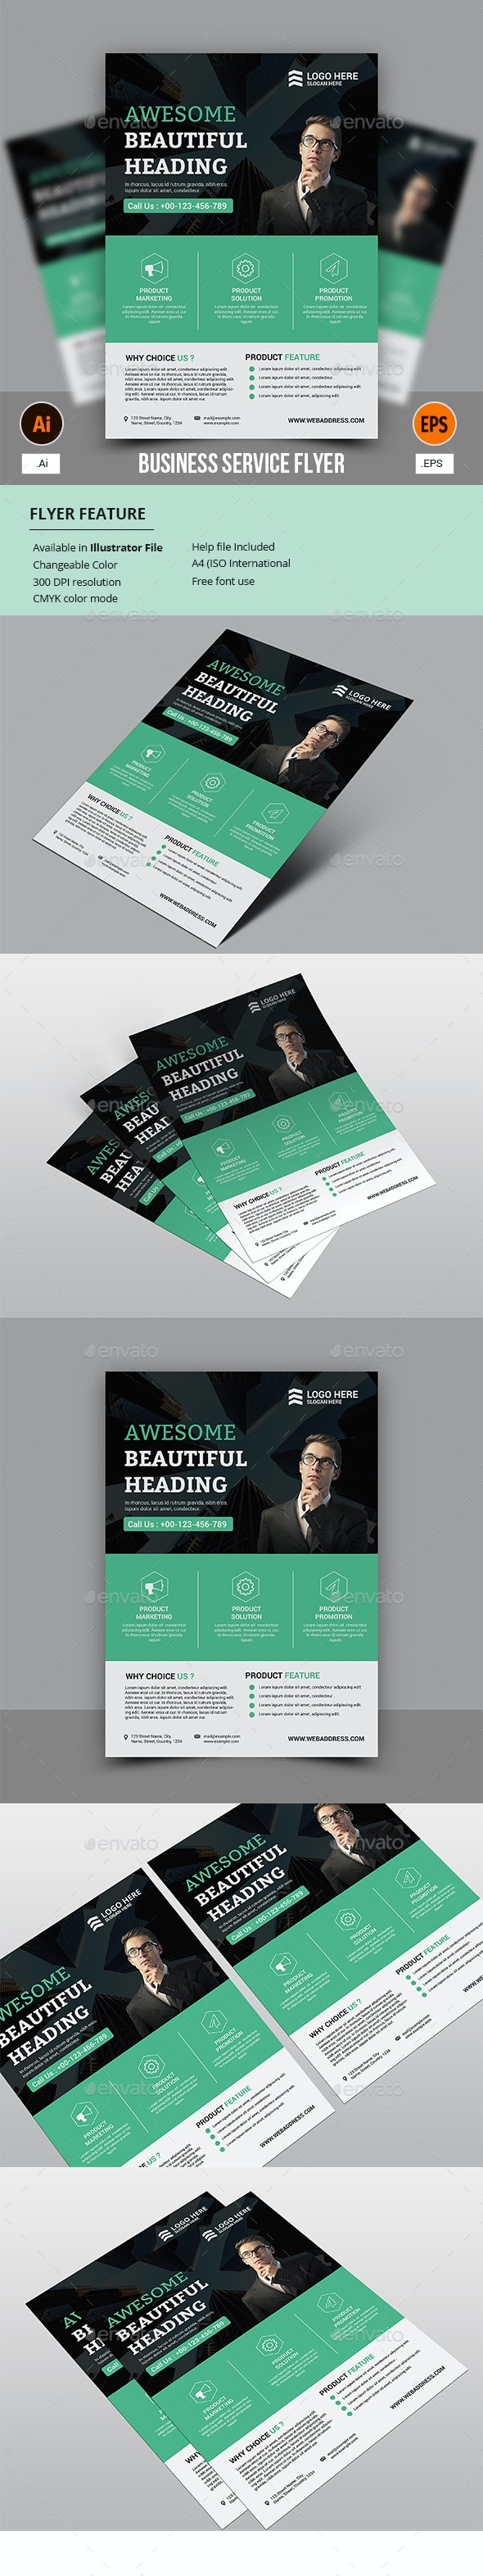 Business Service Flyer - Corporate Flyers